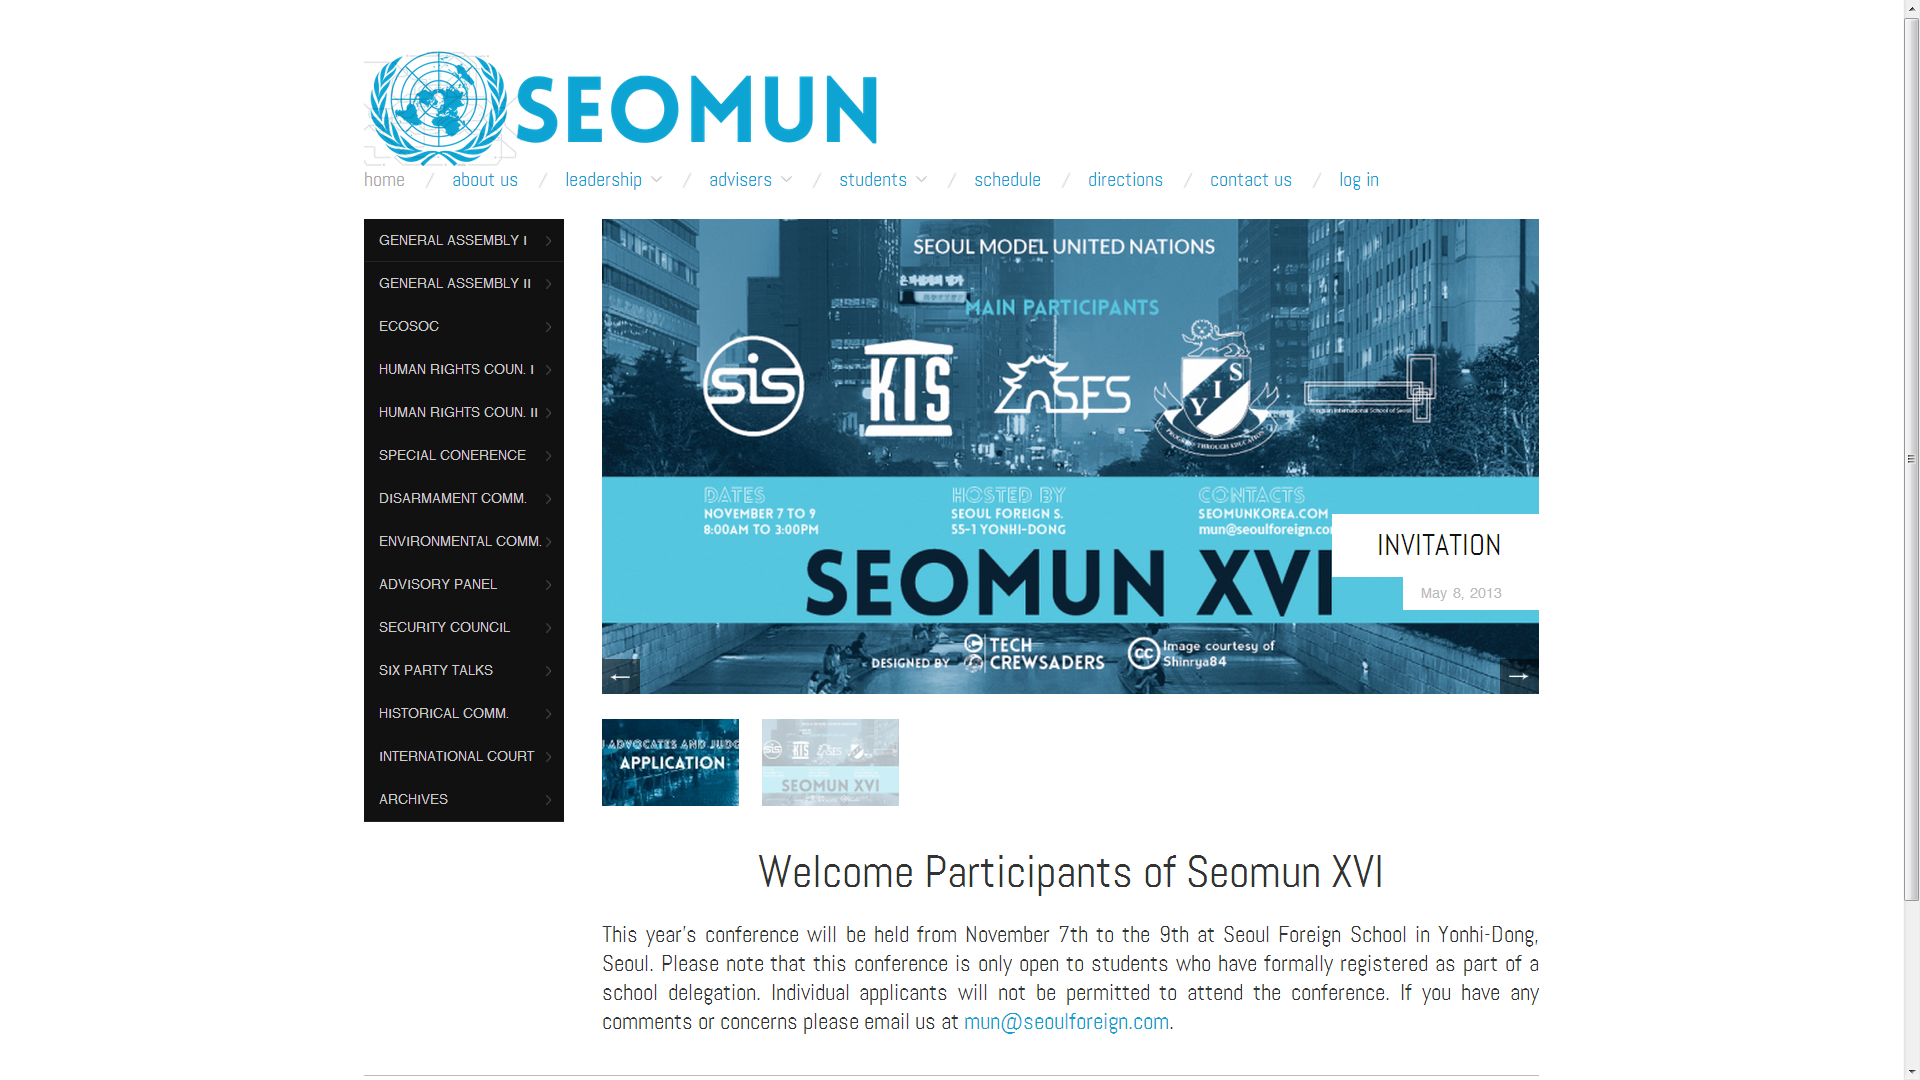 Seoul Model United Nations Website (2013)